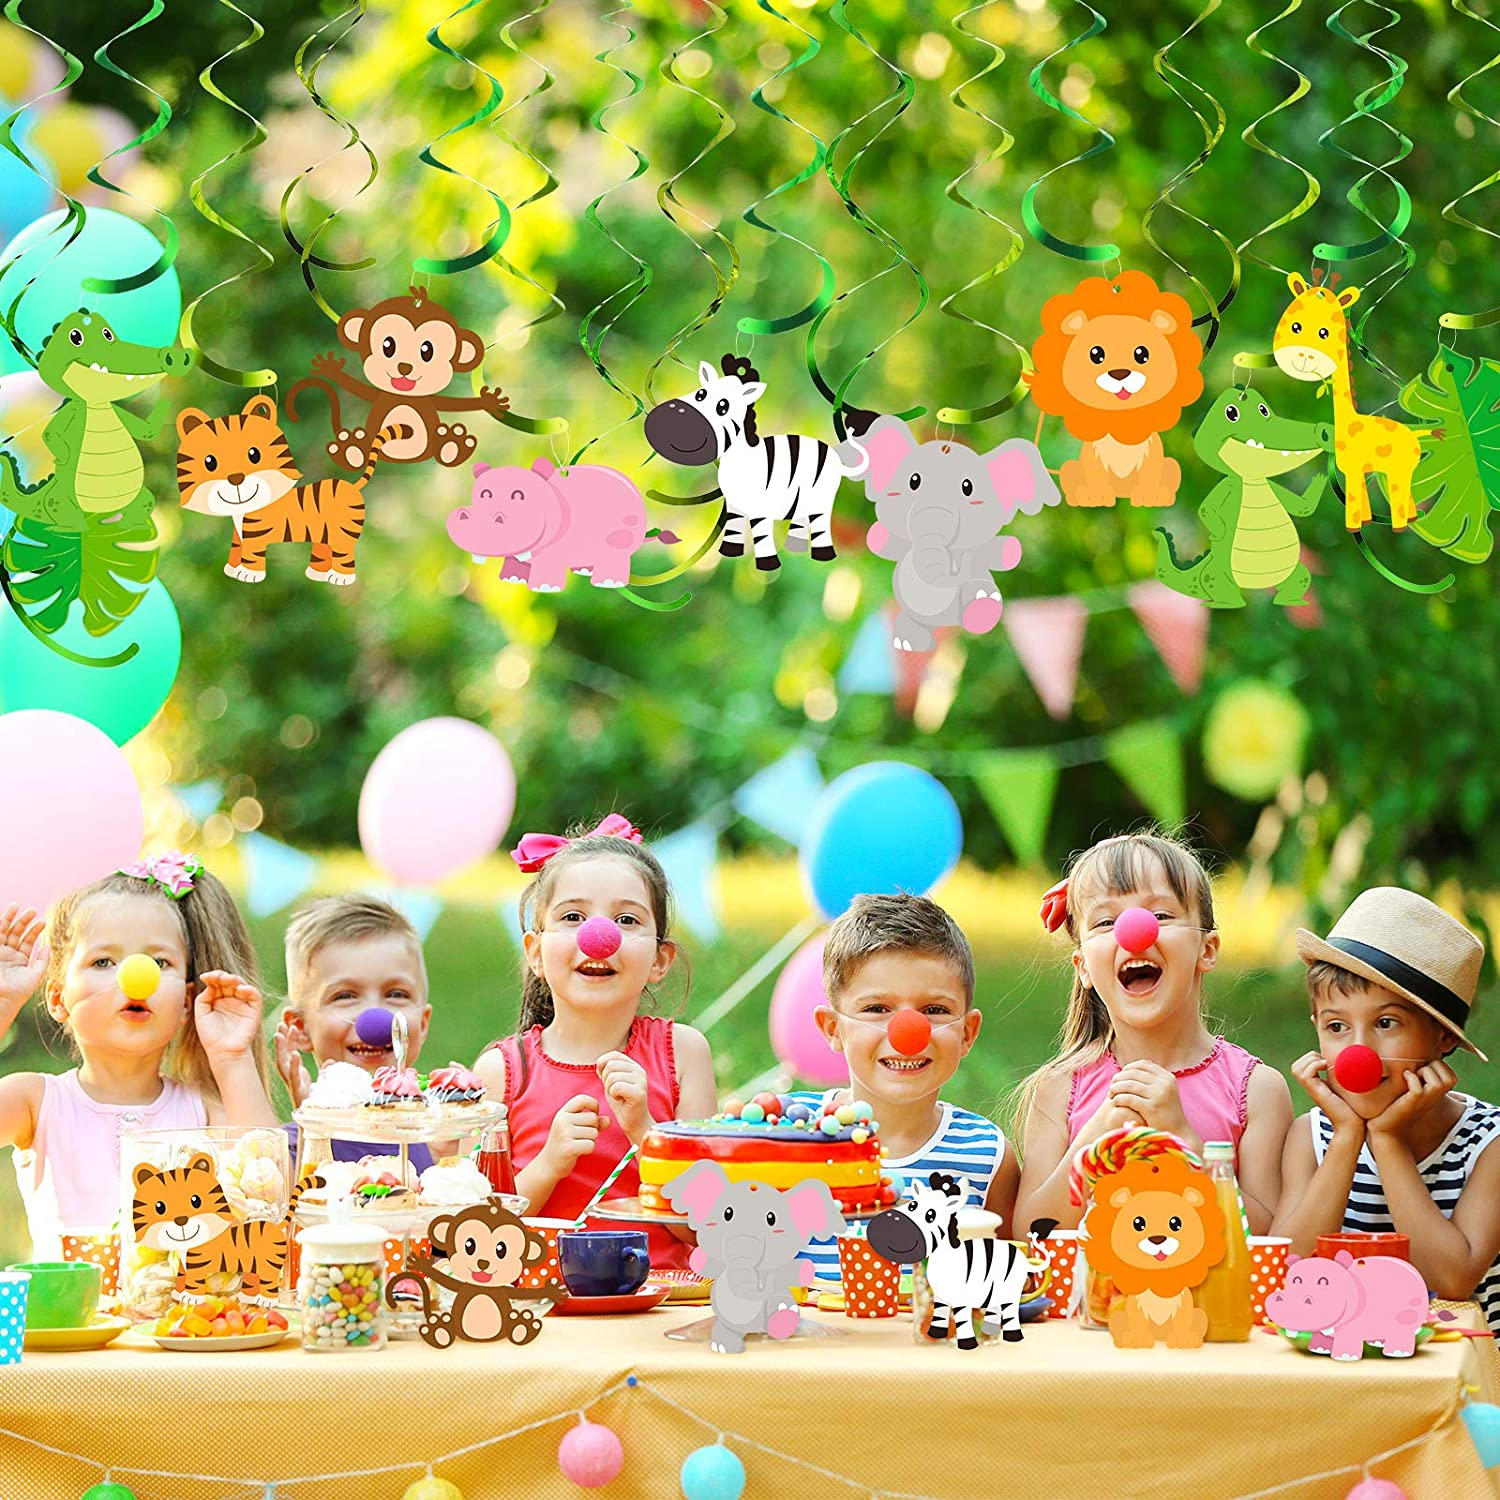 Green Safari Animals Forest Theme Birthday Party Foil Swirls Ceiling Supplies for Boy Girl Baby Jungle Theme Shower Decorations Supplies Blulu 30 Pieces Jungle Animals Hanging Swirl Decorations